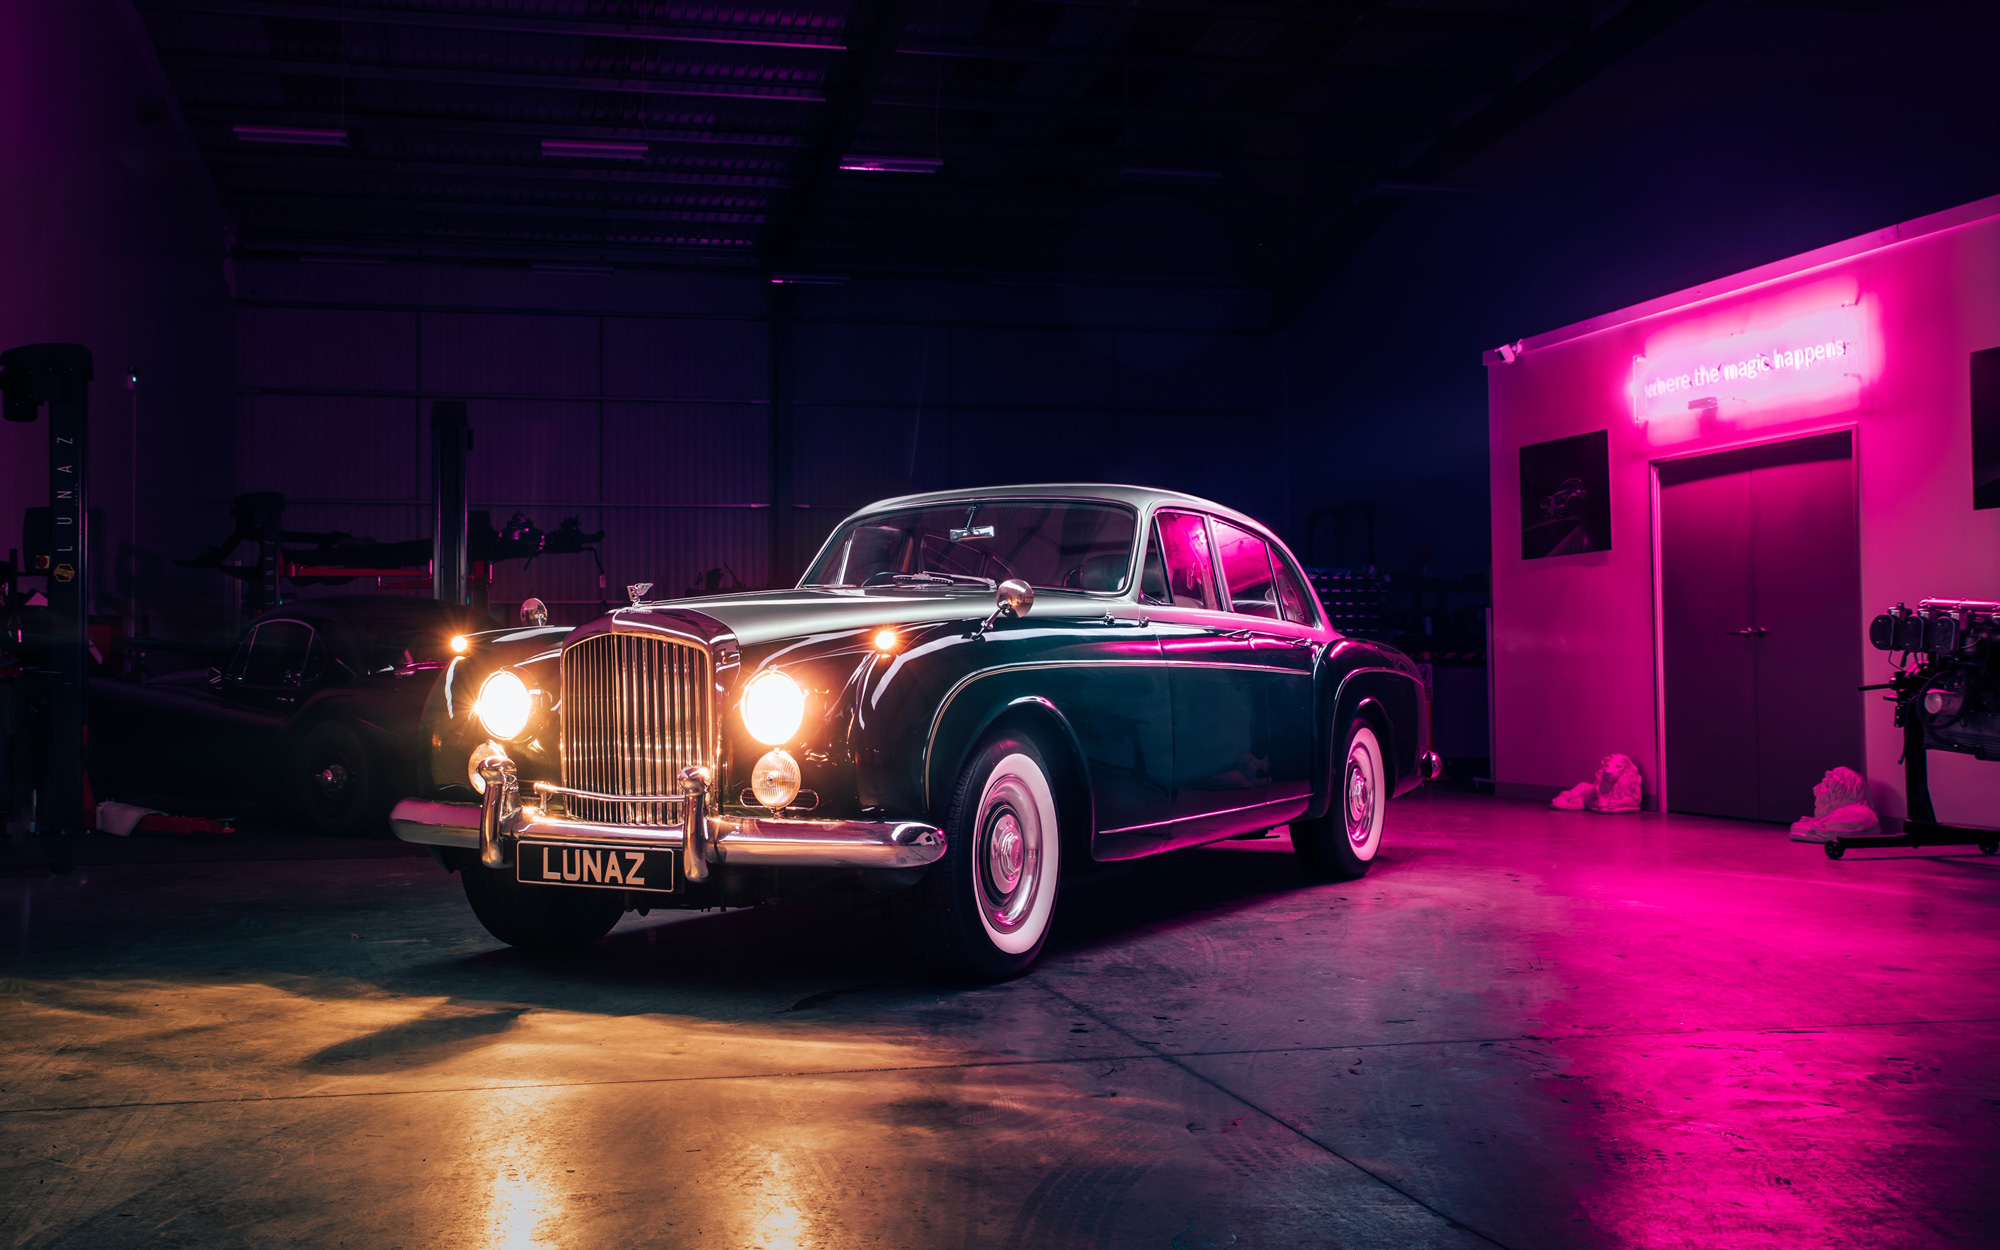 Lunaz has electrified yet another automotive rarity, this time a 60-year-old Bentley S2 Continental Flying Spur. It is a one-off order that cost the client £350,000, but you are free to ask for a similar conversion of a Bentley Continental coupe or sedan.